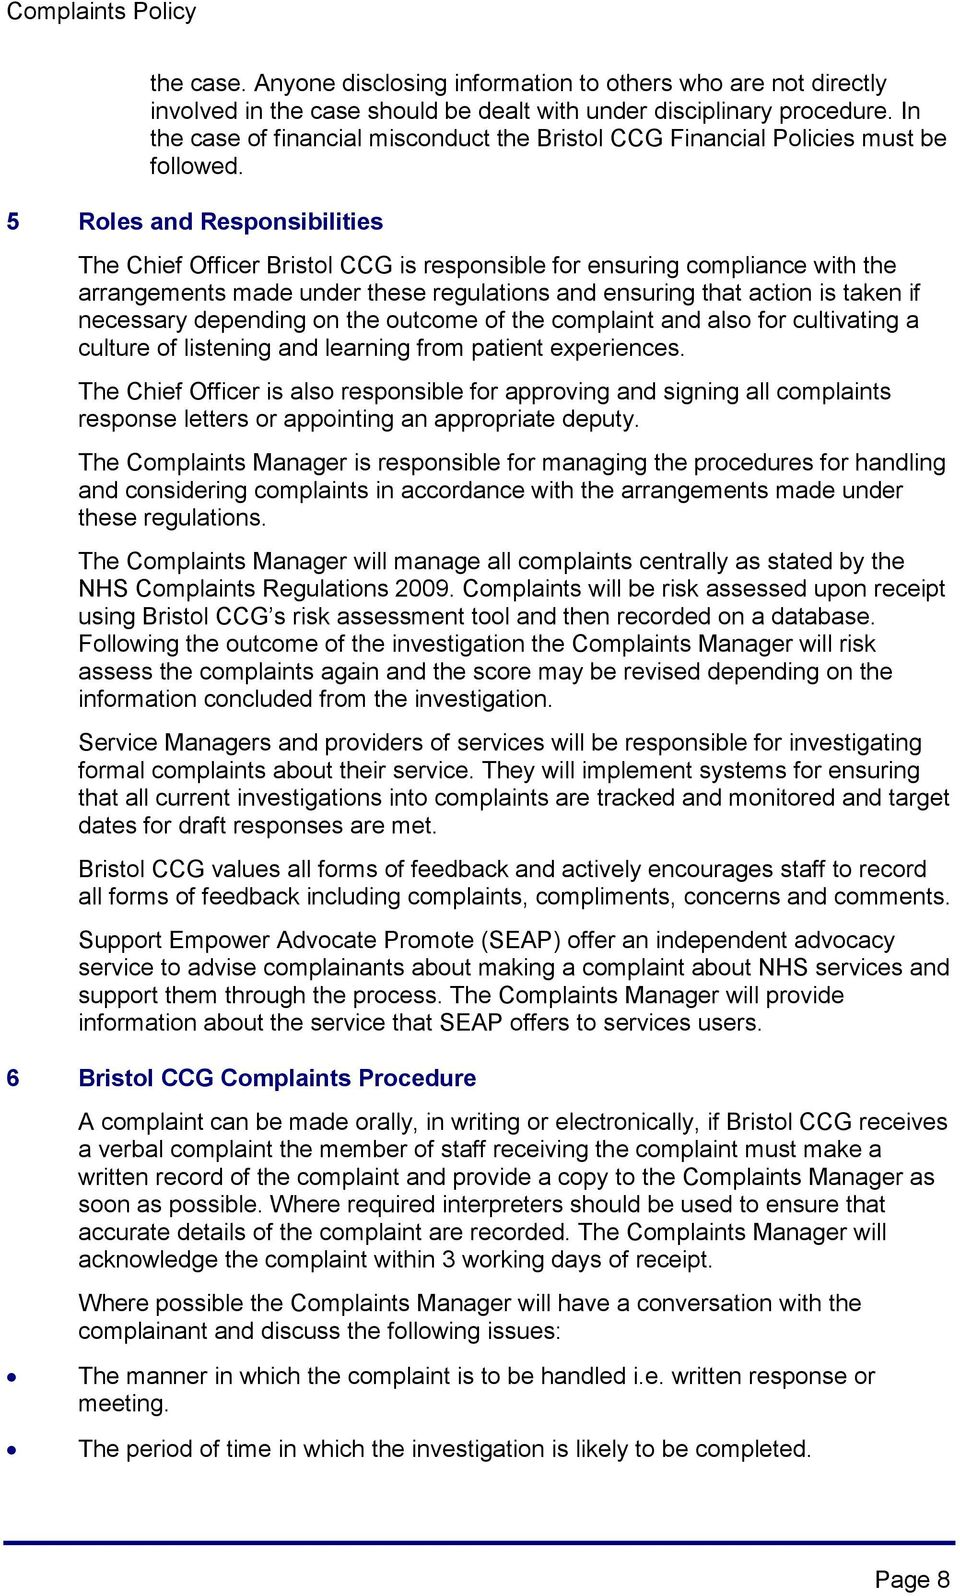 5 Roles and Responsibilities The Chief Officer Bristol CCG is responsible for ensuring compliance with the arrangements made under these regulations and ensuring that action is taken if necessary